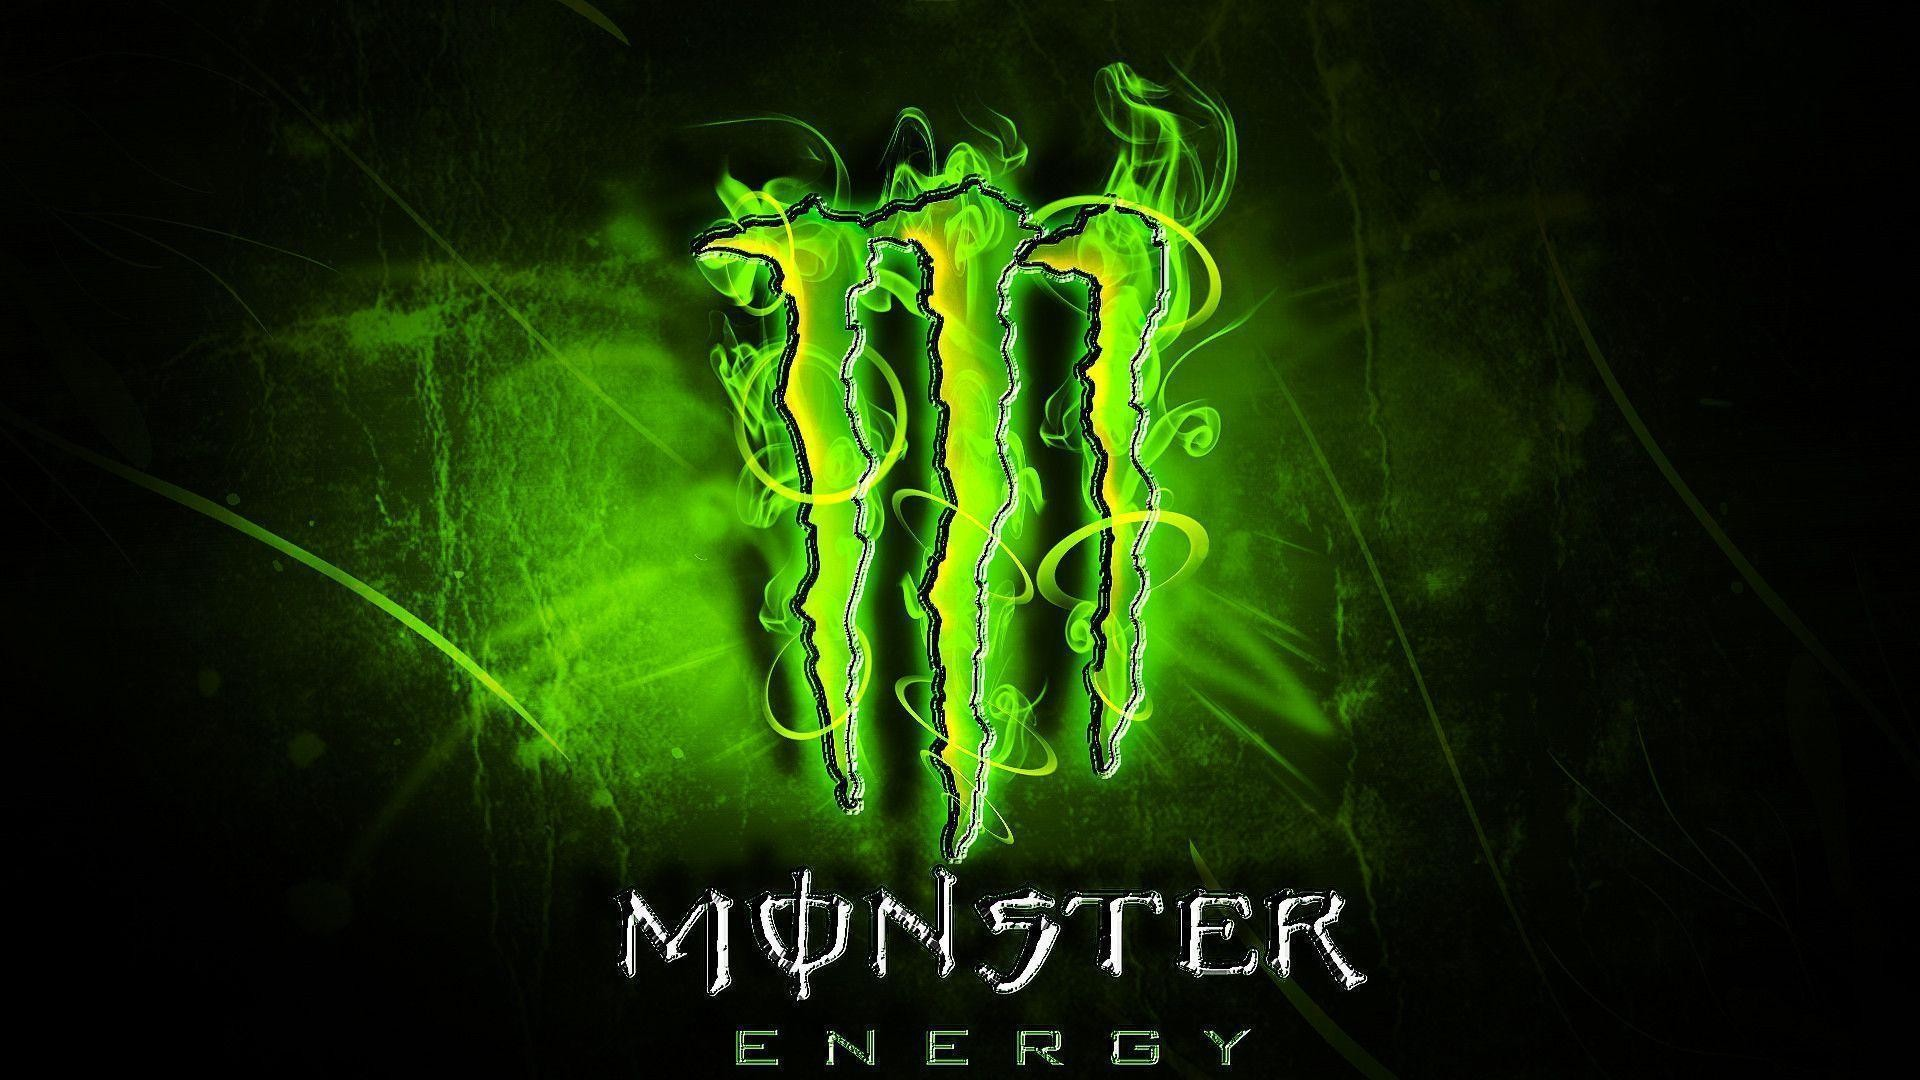 Monster energy logo wallpapers 72 images 1920x1080 monster energy logo wallpaper 1406 wallpaper best hd wallpaper voltagebd Choice Image